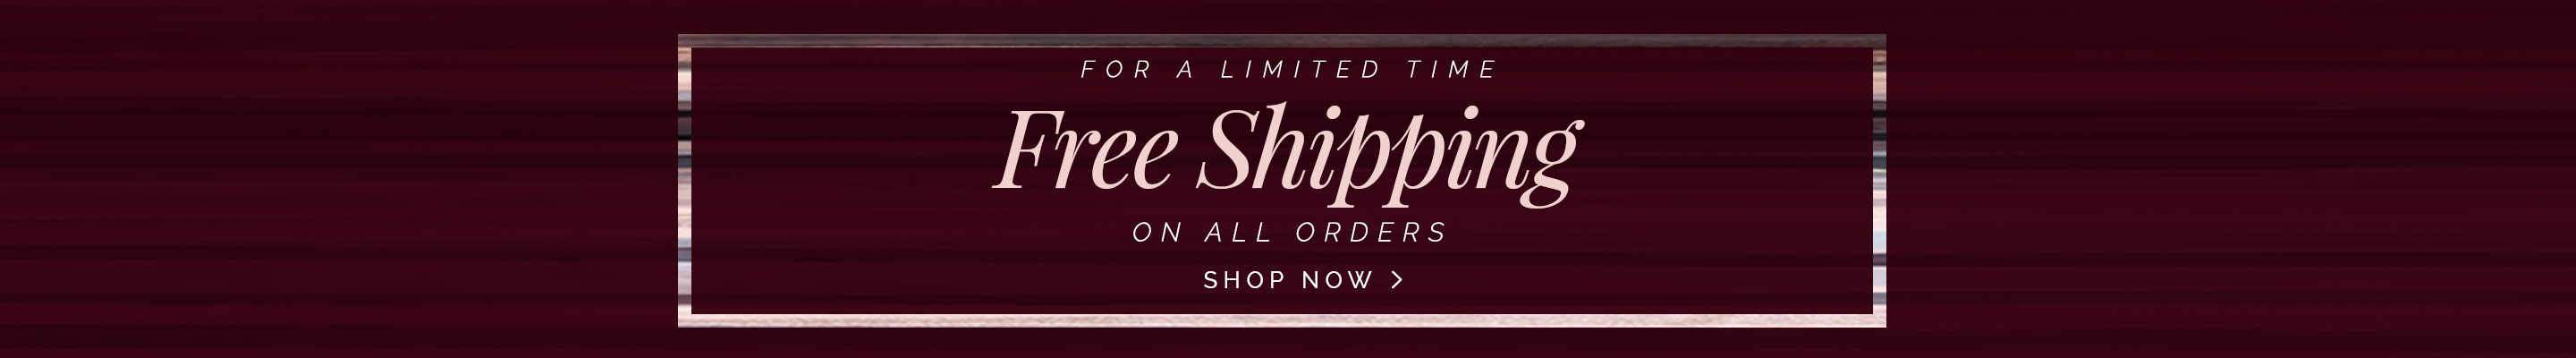 Melanie Lyne - FREE SHIPPING - SHOP NOW